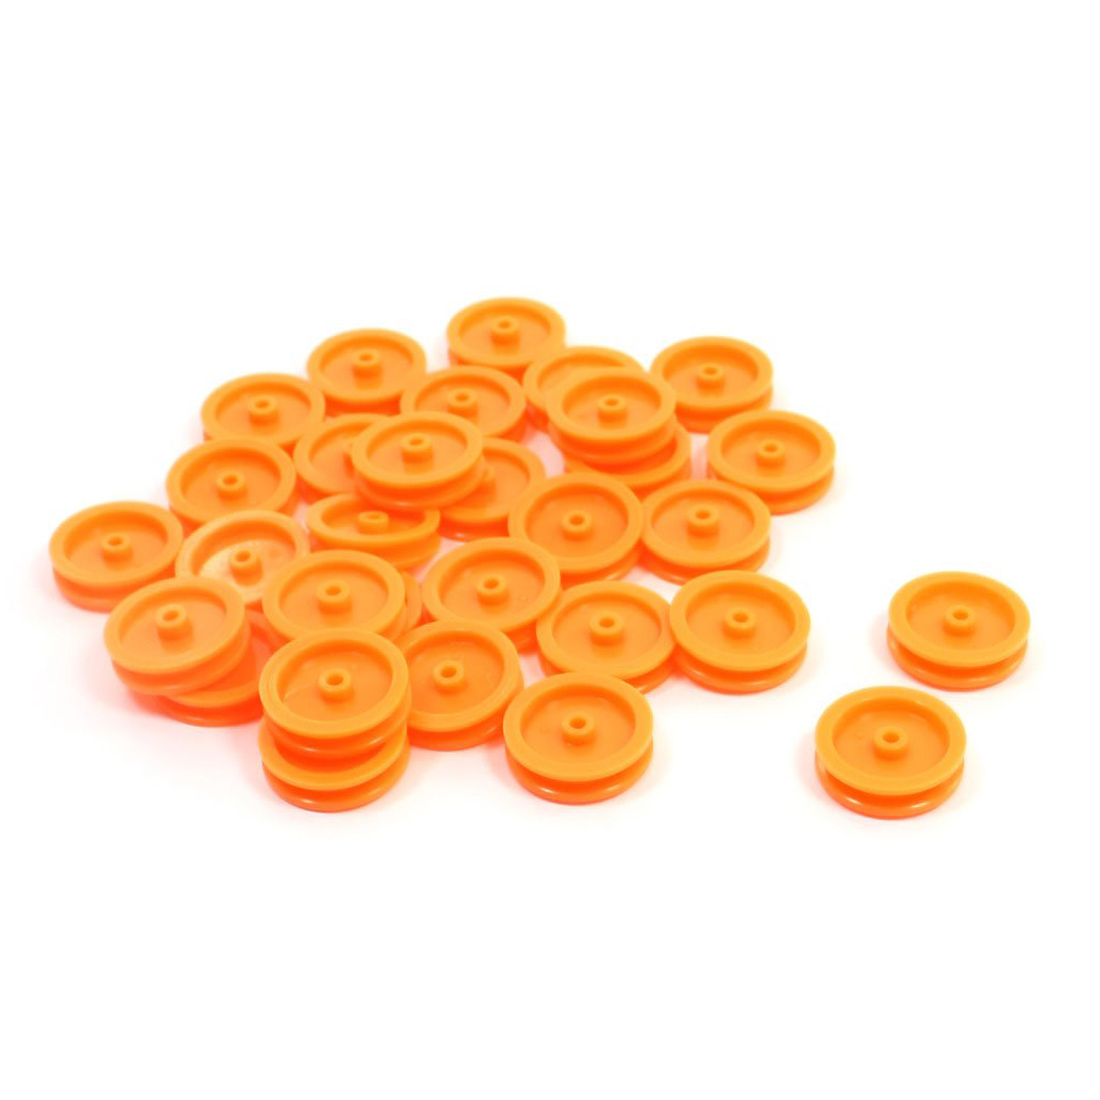 ABWE 30 Pcs 2mm Hole Orange Plastic Belt <font><b>Pulley</b></font> for DIY RC Toy <font><b>Car</b></font> Airplane image